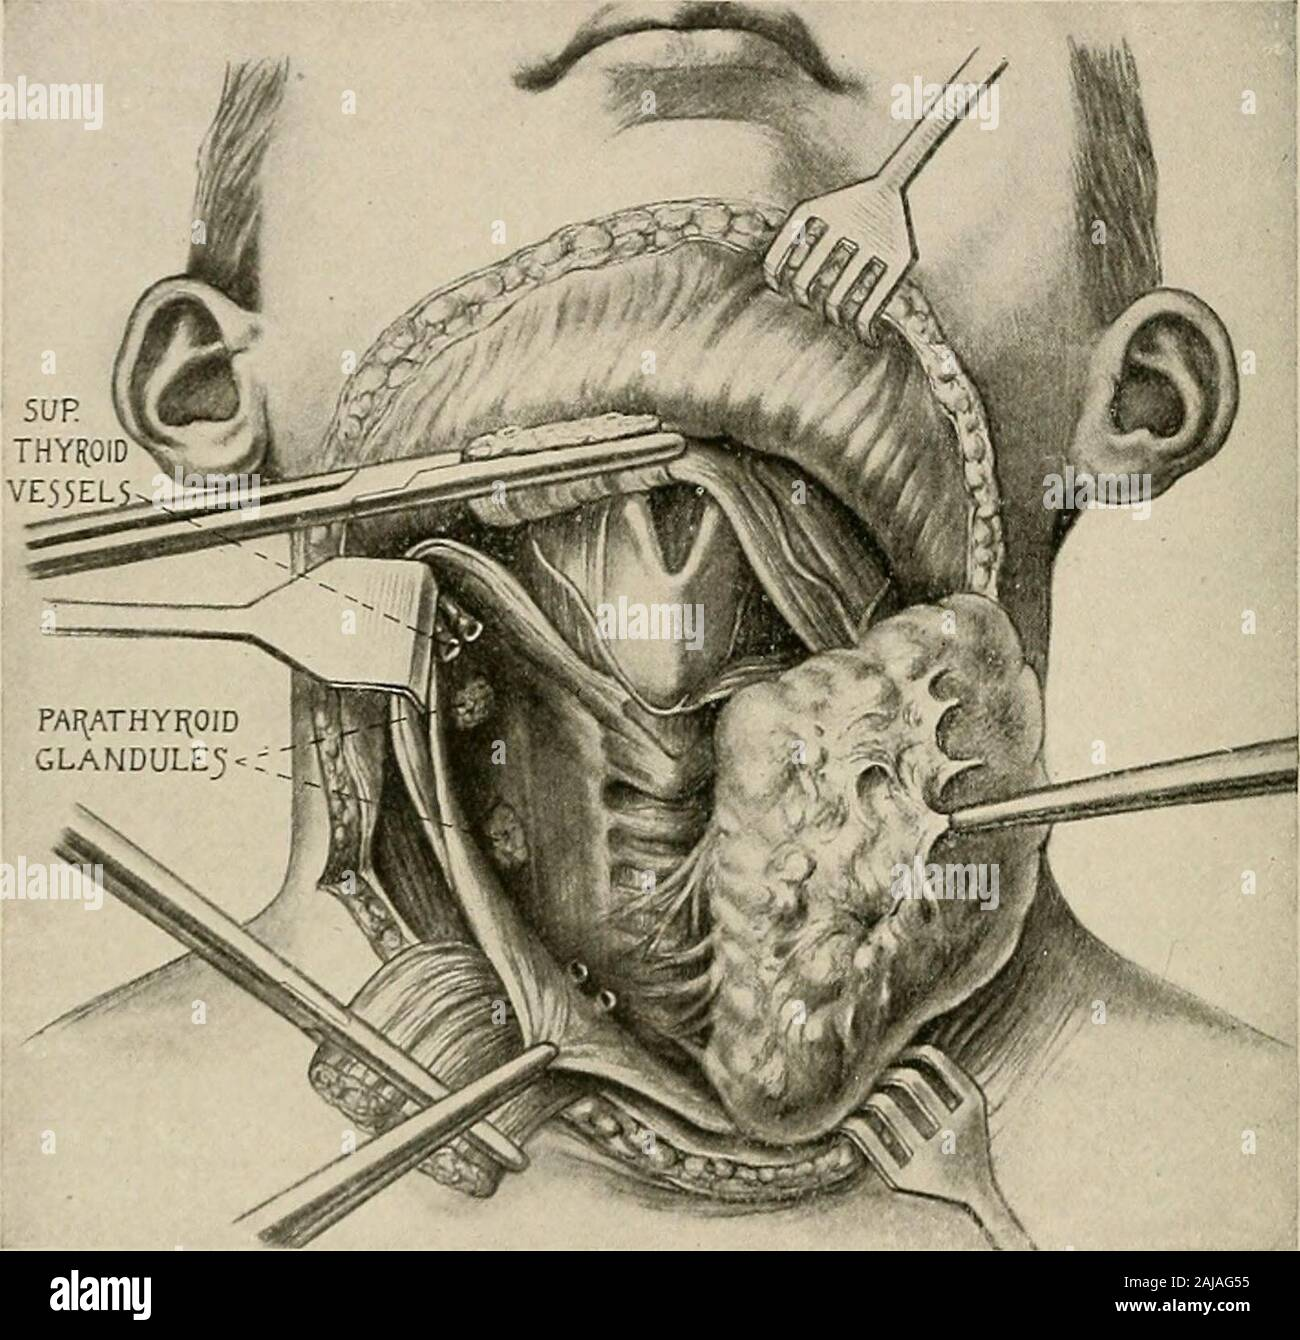 Surgical treatment; a practical treatise on the therapy of surgical diseases for the use of practitioners and students of surgery . umatized, its blood supply should not be harmed, and the raw surfaceleft after the enucleation should be covered with fascia to protect it. The doable resection of nontoxic goiter, which is called for because of the VOL. II—25 386 SURGICAL TREATMENT mechanical inconvenience of the swelling, is an operation which should haveno mortality. The tumor is best exposed by the horizontal incision extend-ing from one external jugular vein to the other. The upper flap is di Stock Photo